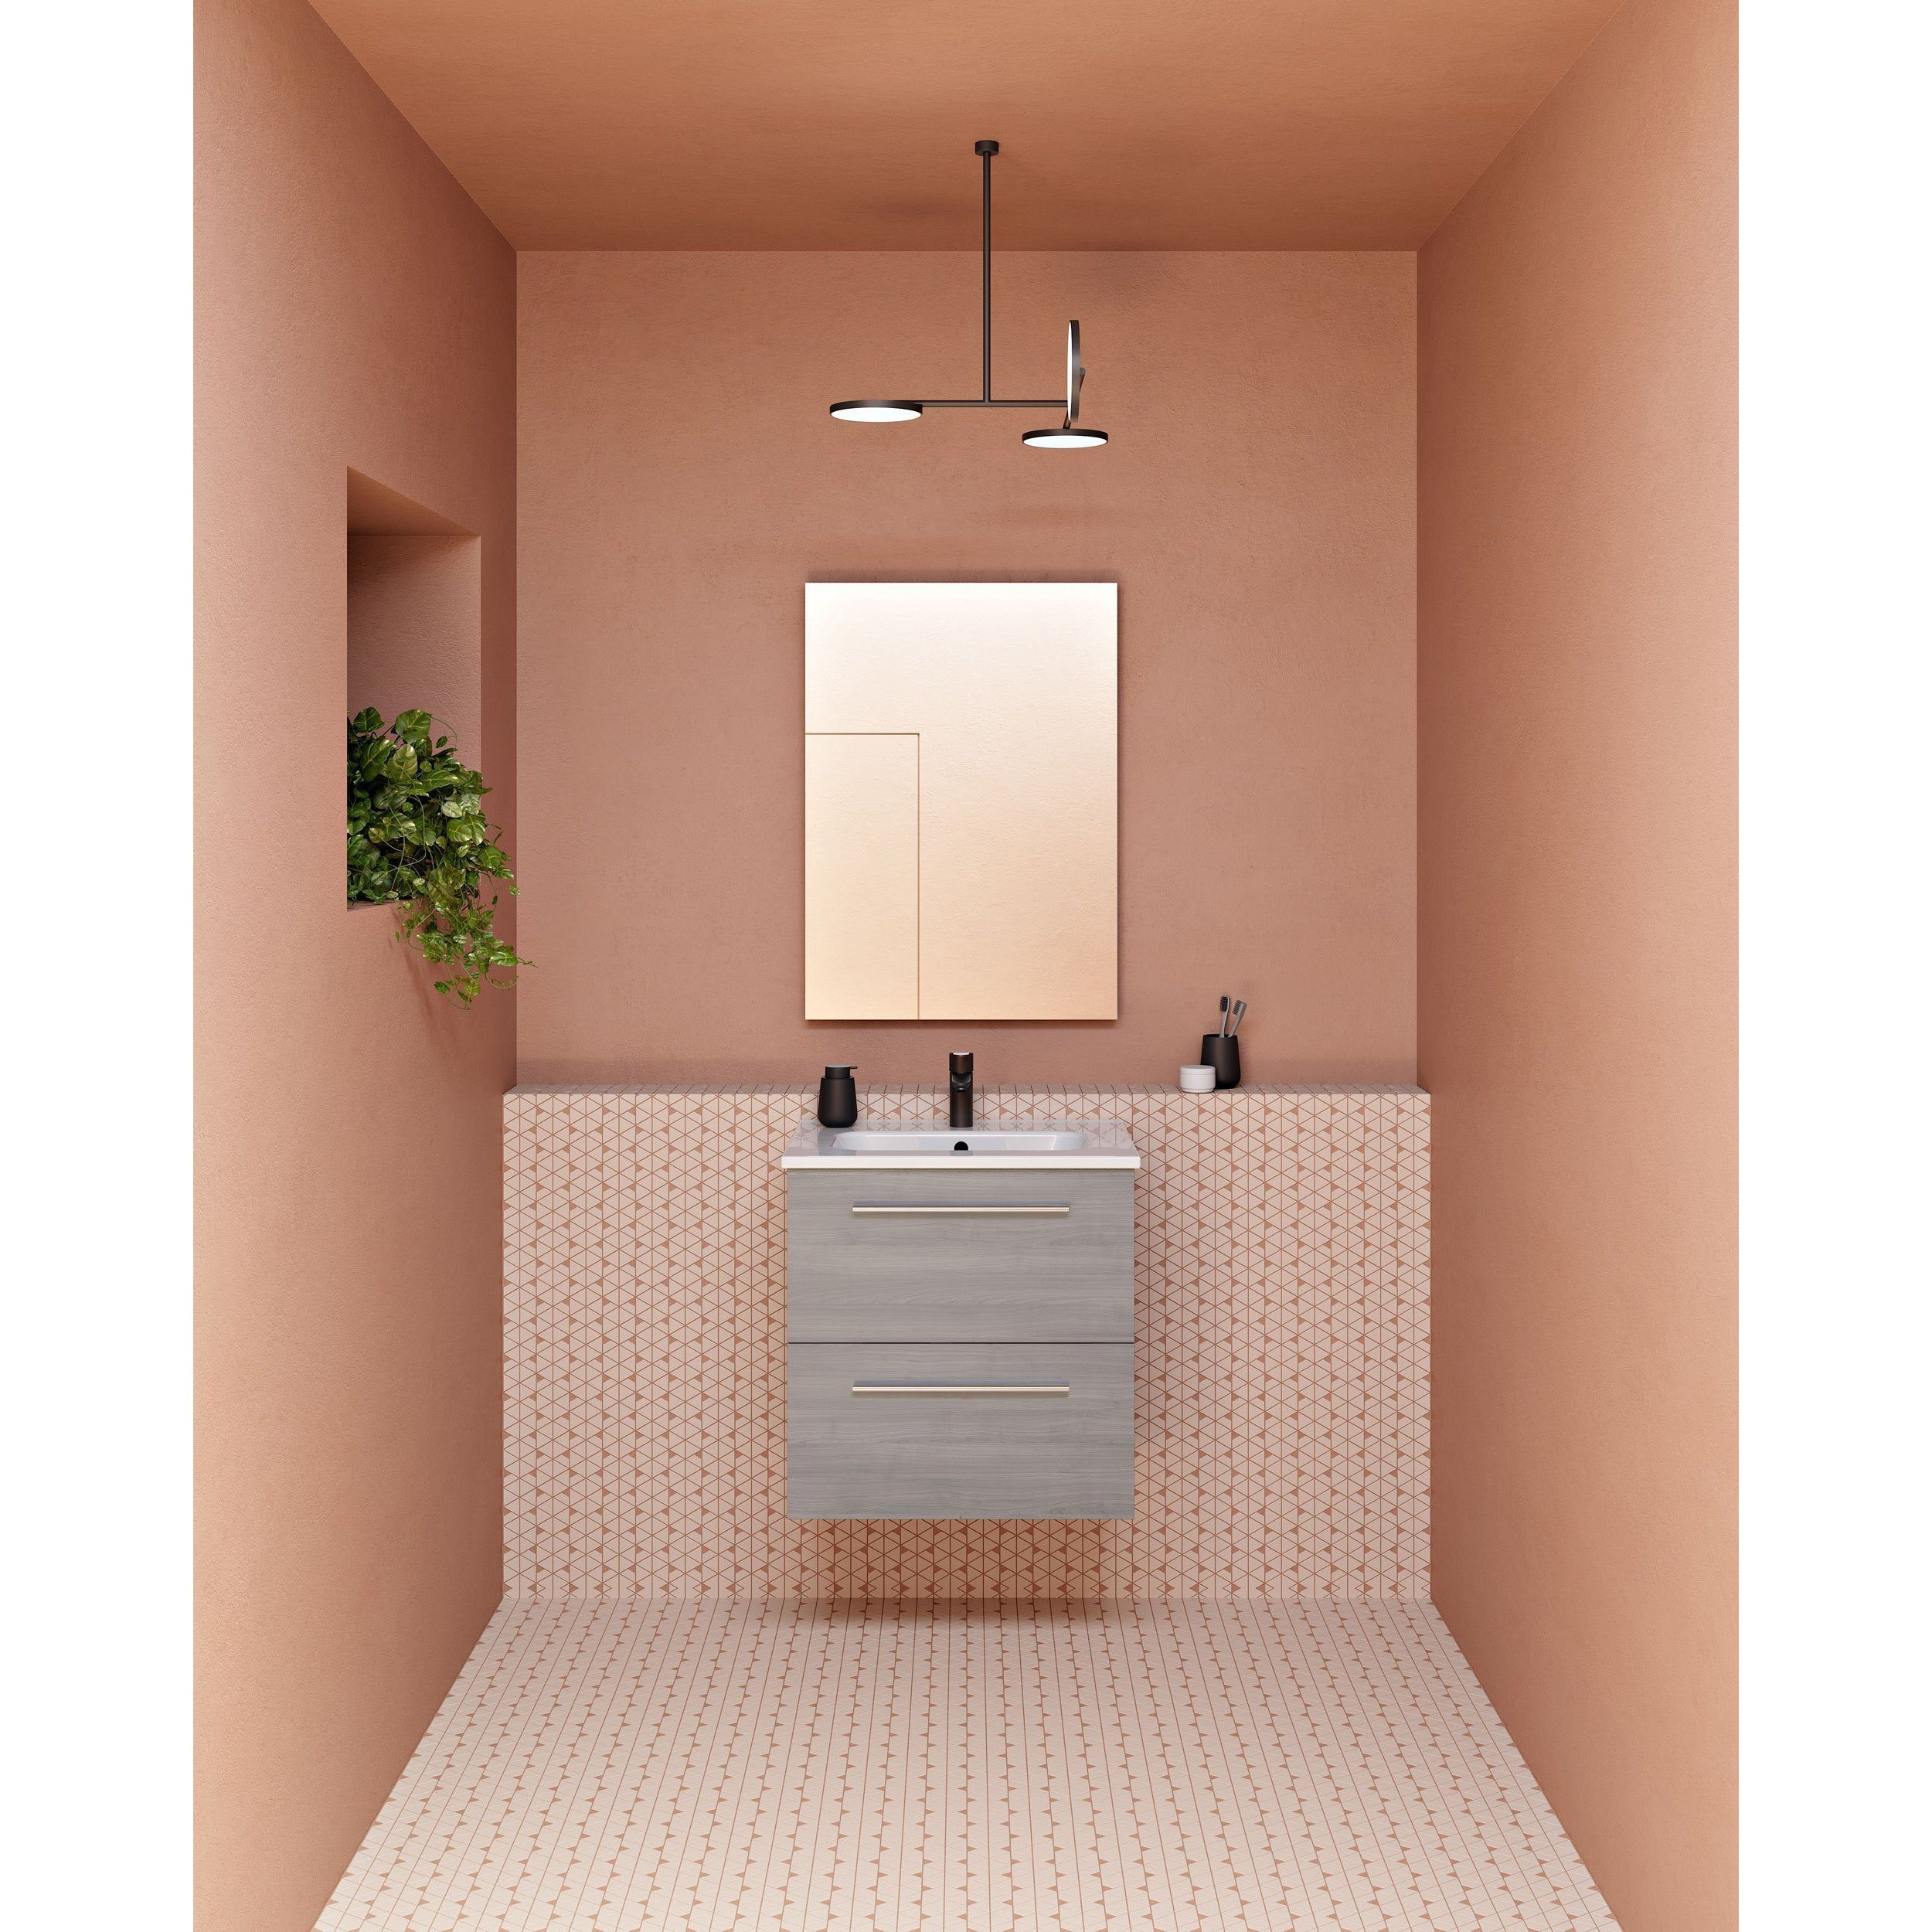 Sku 125487 Item 125487 Brand Royo Street Modern Floating Bath Vanity Set 20 Inches Grey With Basin And Mirror Bathroom Vanities And Sink Consoles Royo Grey 650 00 700 00 Wall Mounted Engineered Wood Ceramic Glass 14 To